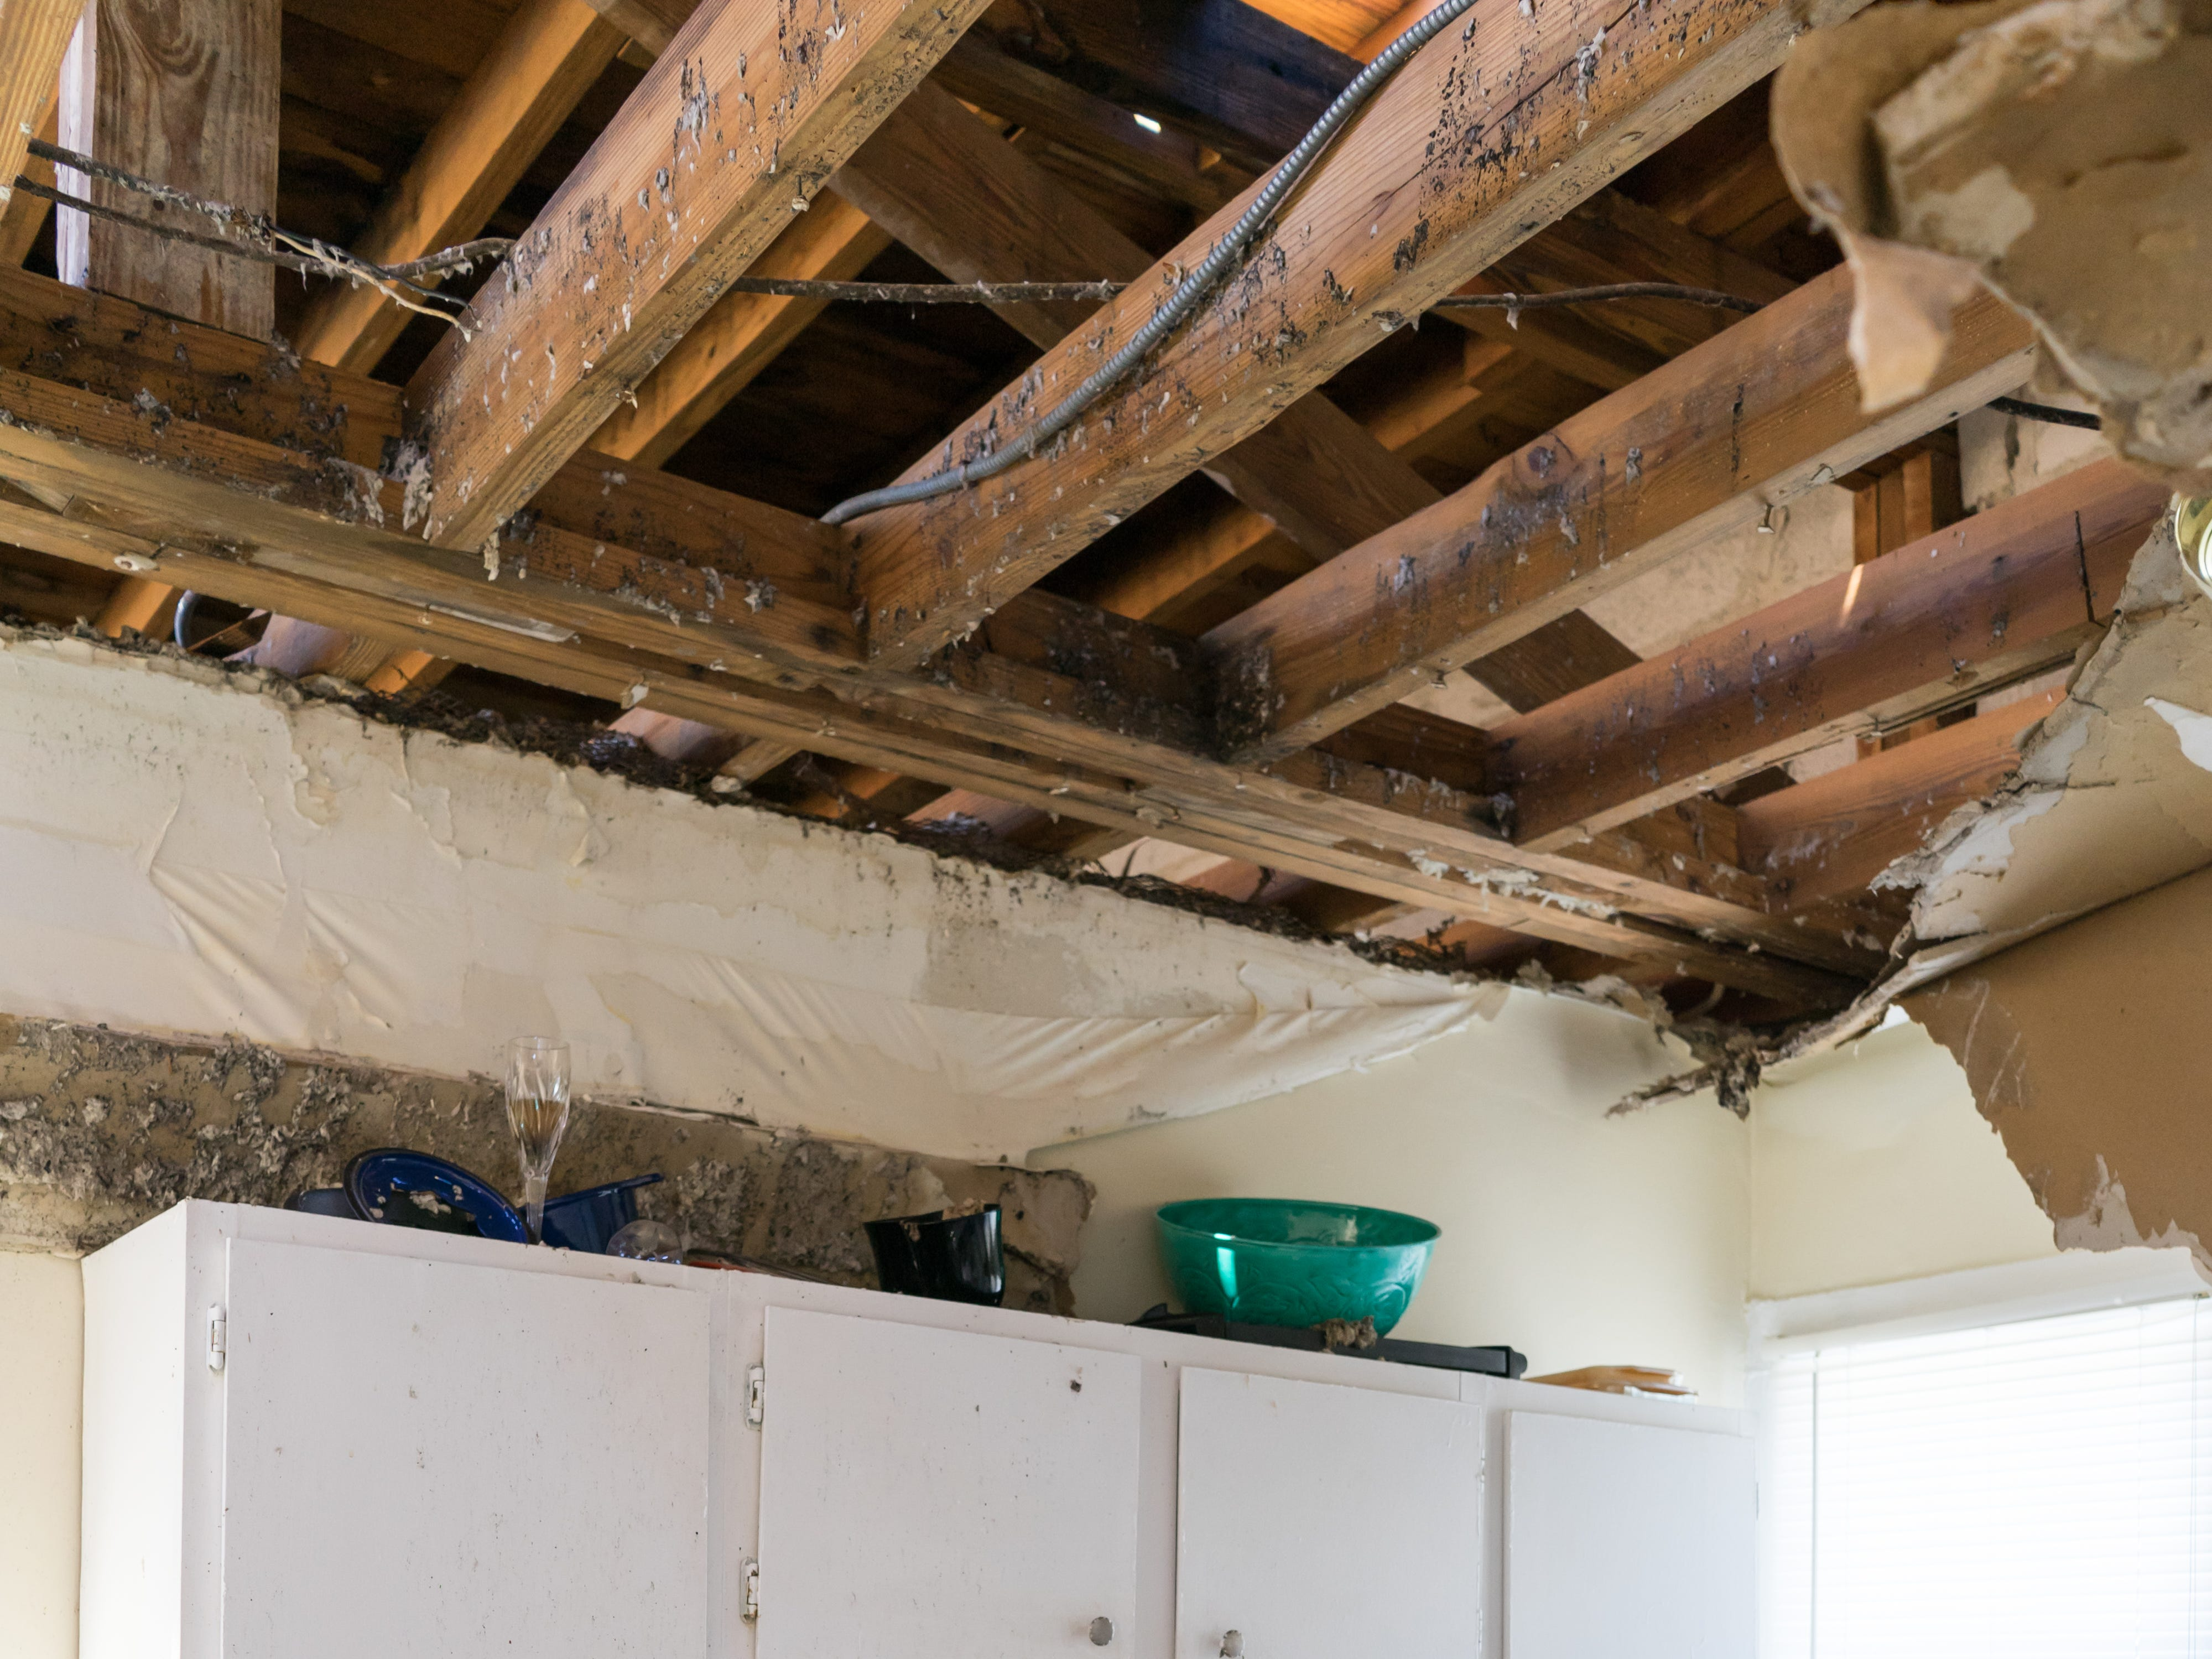 The roof of Jordan Slaughter's apartment was ripped apart, leaving the apartment vulnerable to severe water damage during Hurricane Michael.